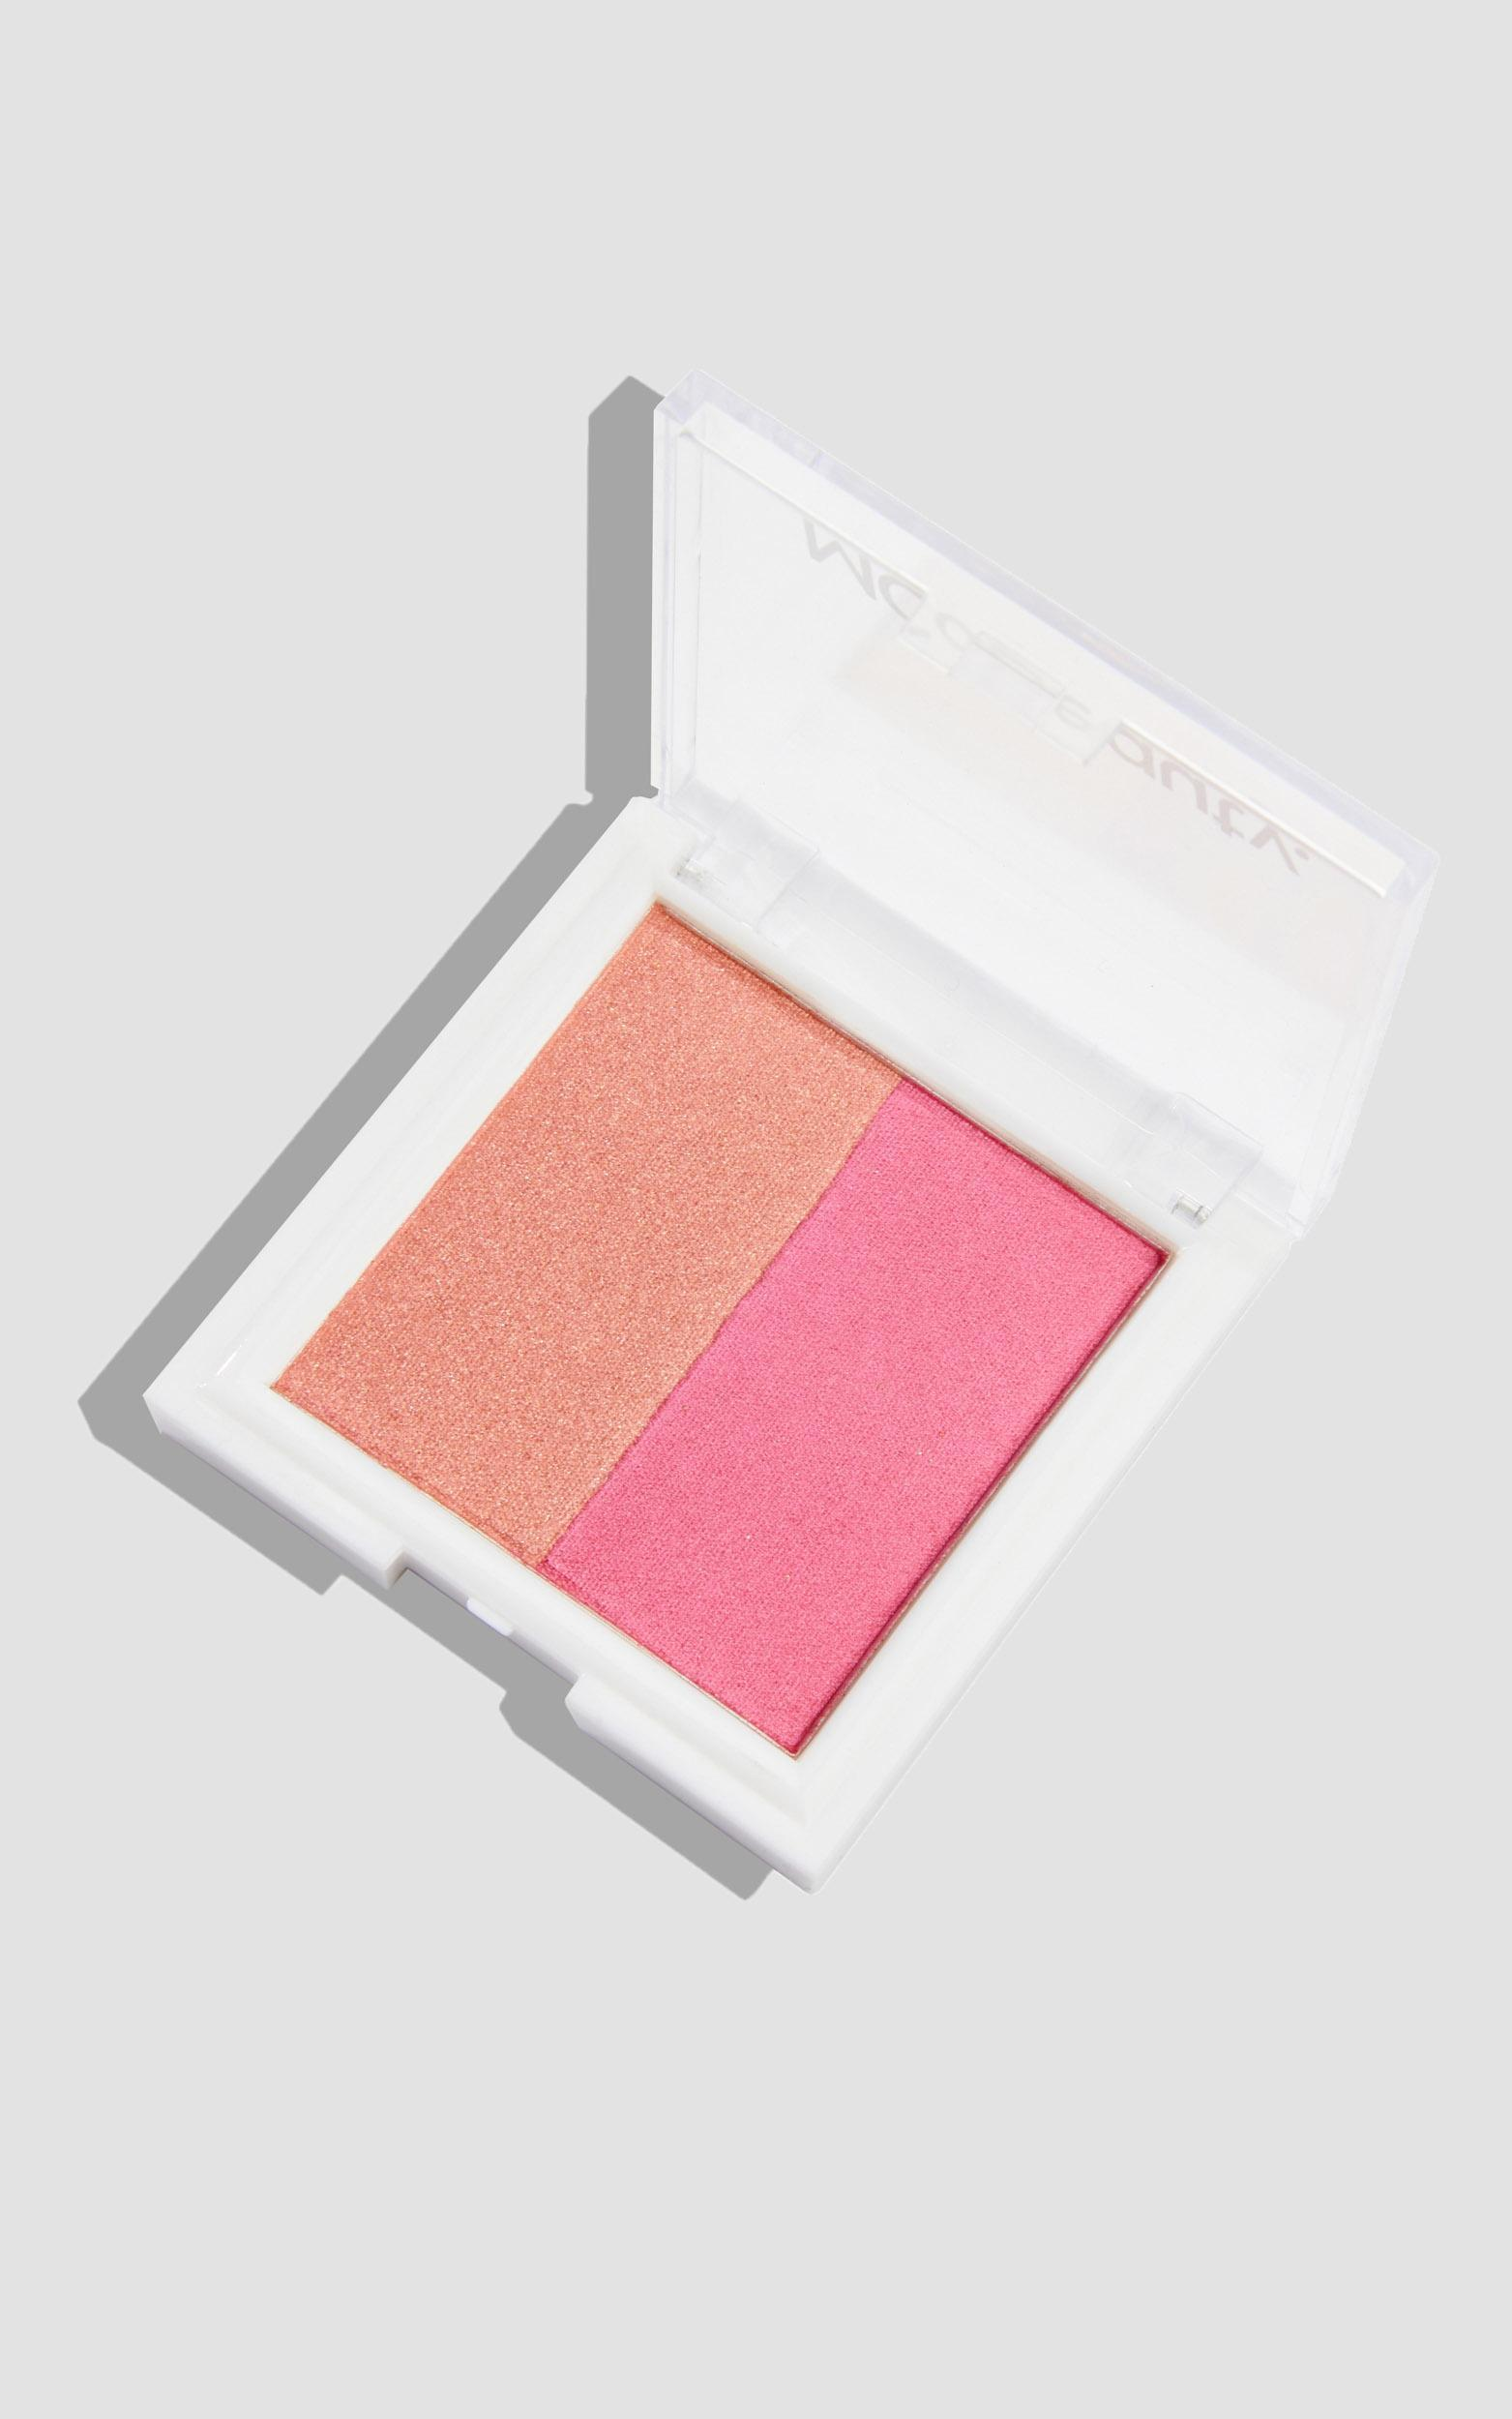 MCoBeauty - Duo Blush in Berry Glow, Pink, hi-res image number null